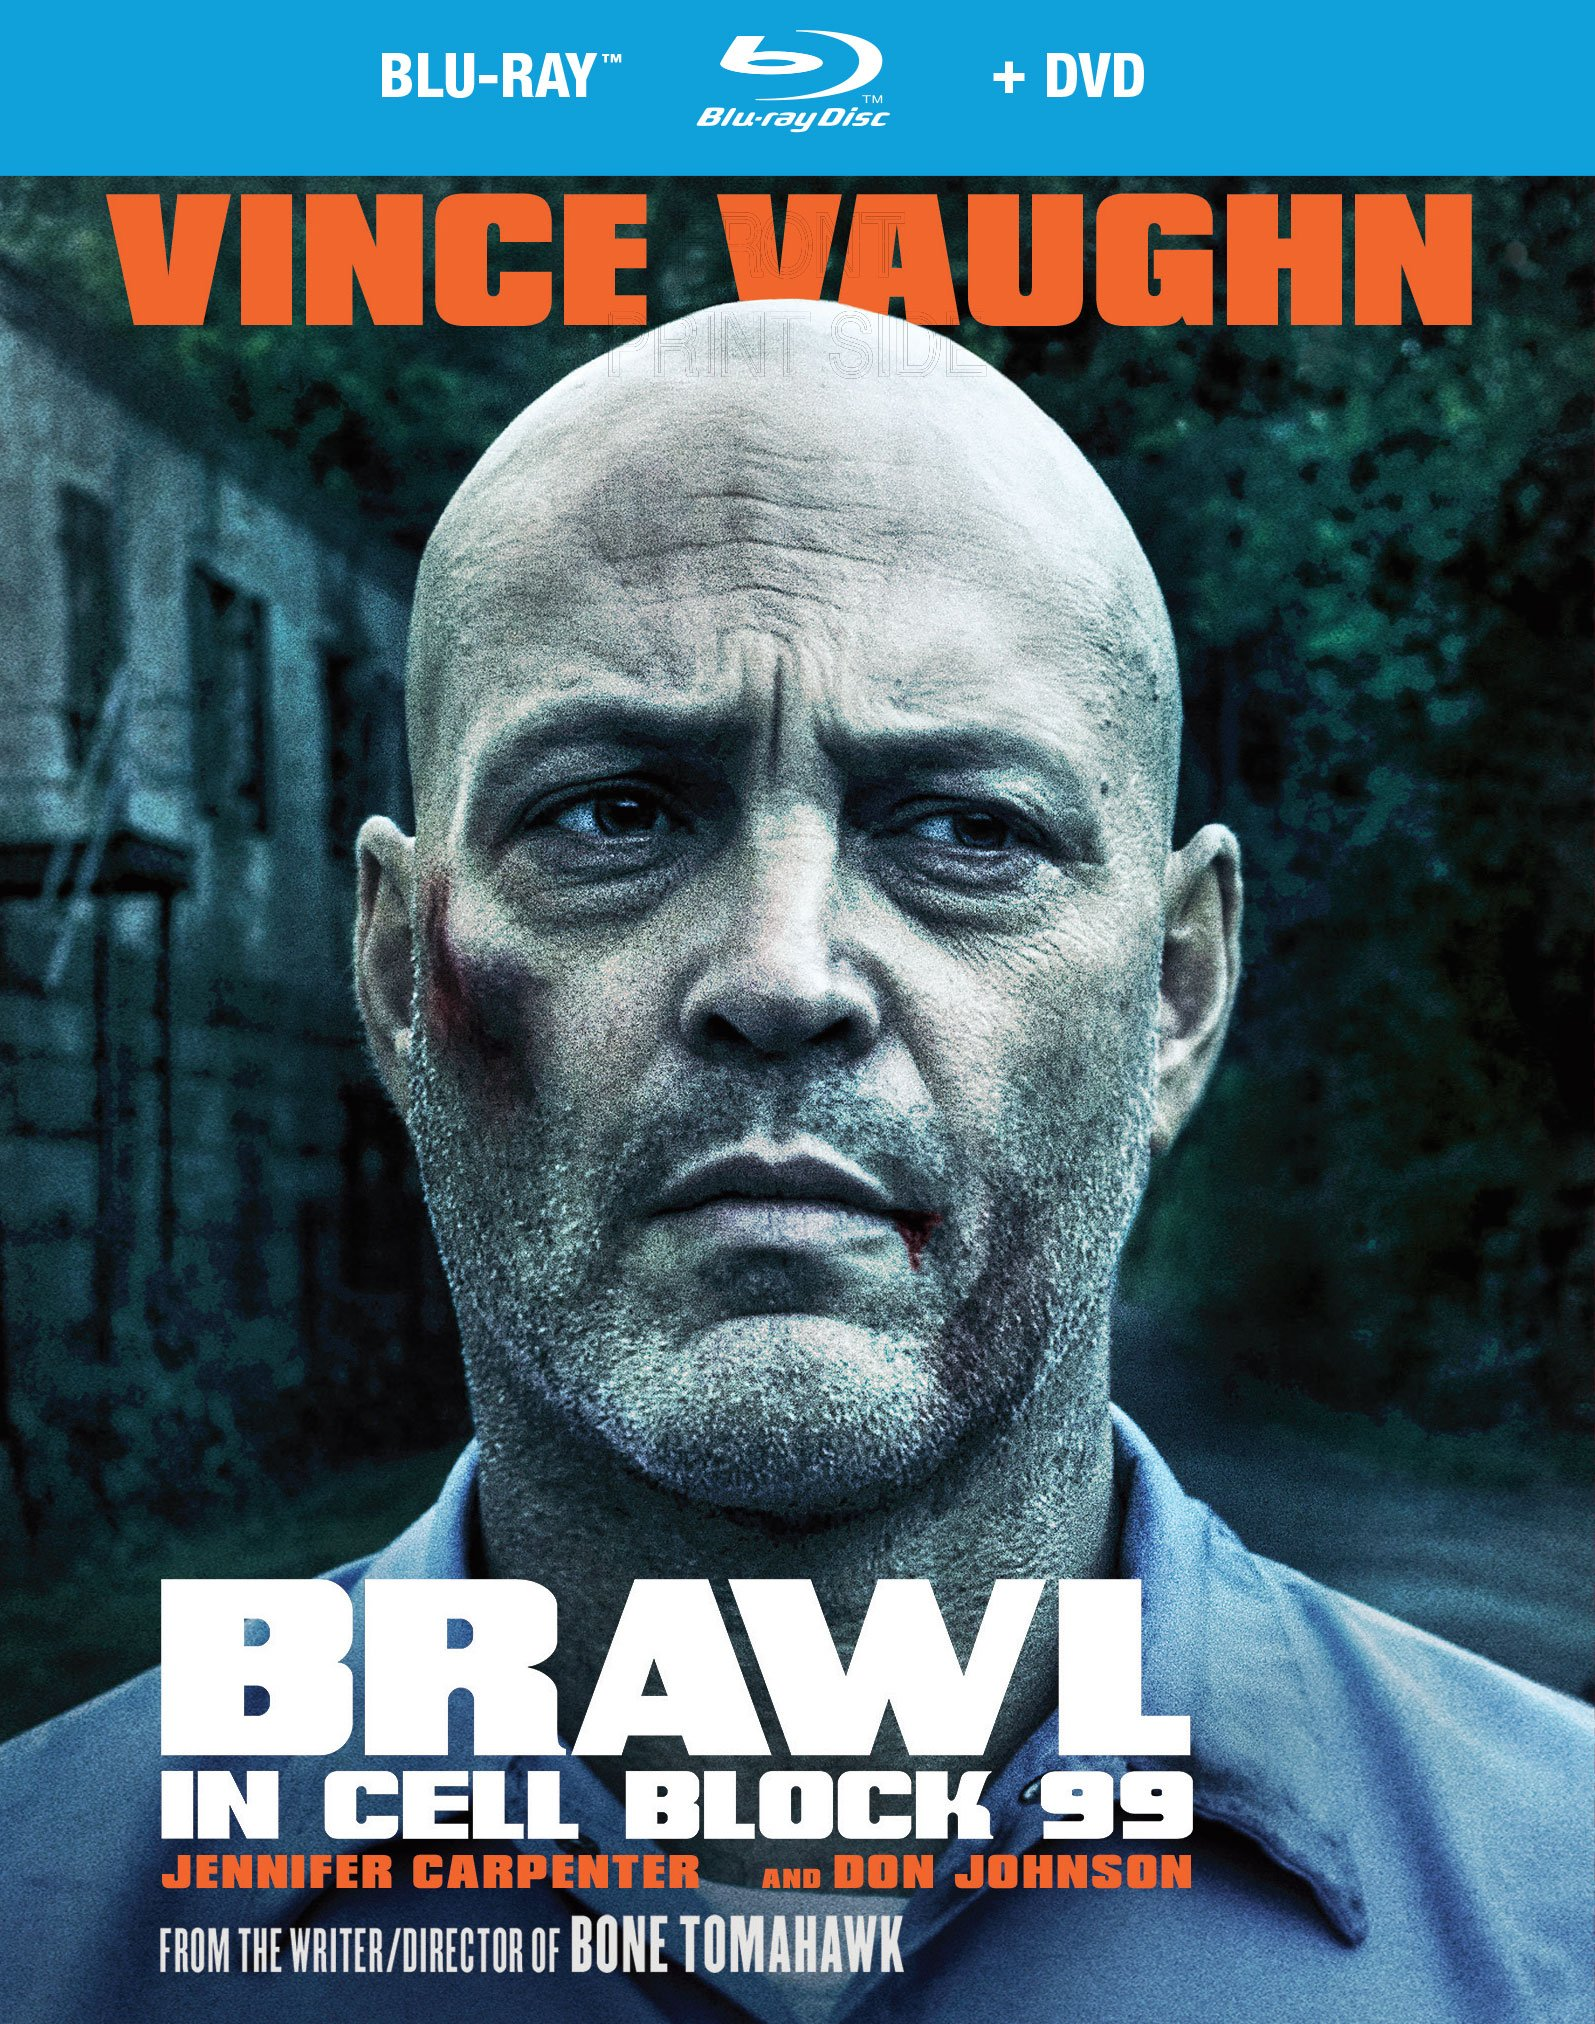 Blu-ray : Brawl in Cell Block 99 (With DVD, 2 Disc)